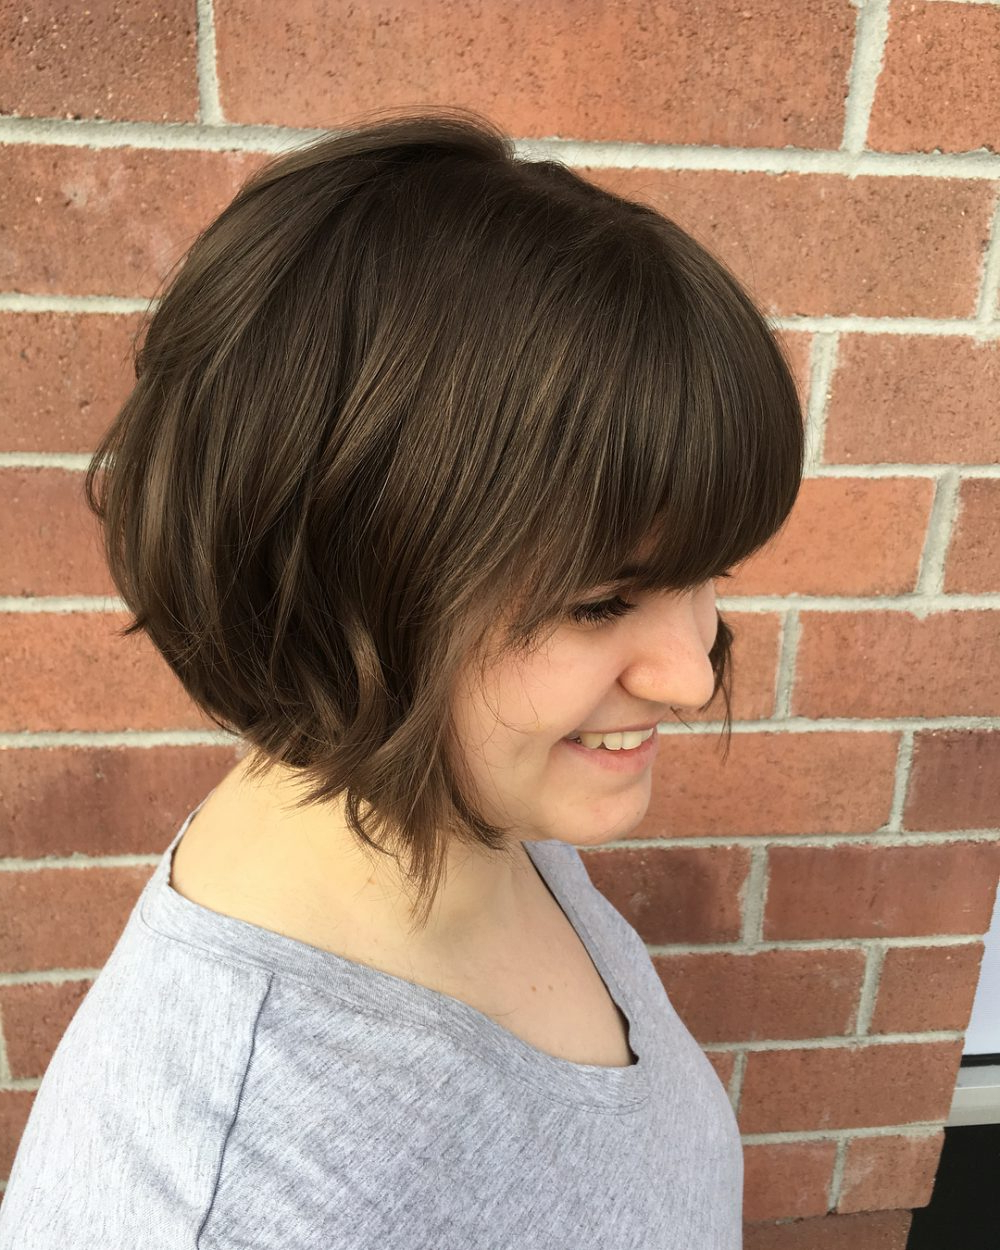 34 Greatest Short Haircuts And Hairstyles For Thick Hair For 2018 Pertaining To Layered Bob Hairstyles For Thick Hair (View 9 of 20)